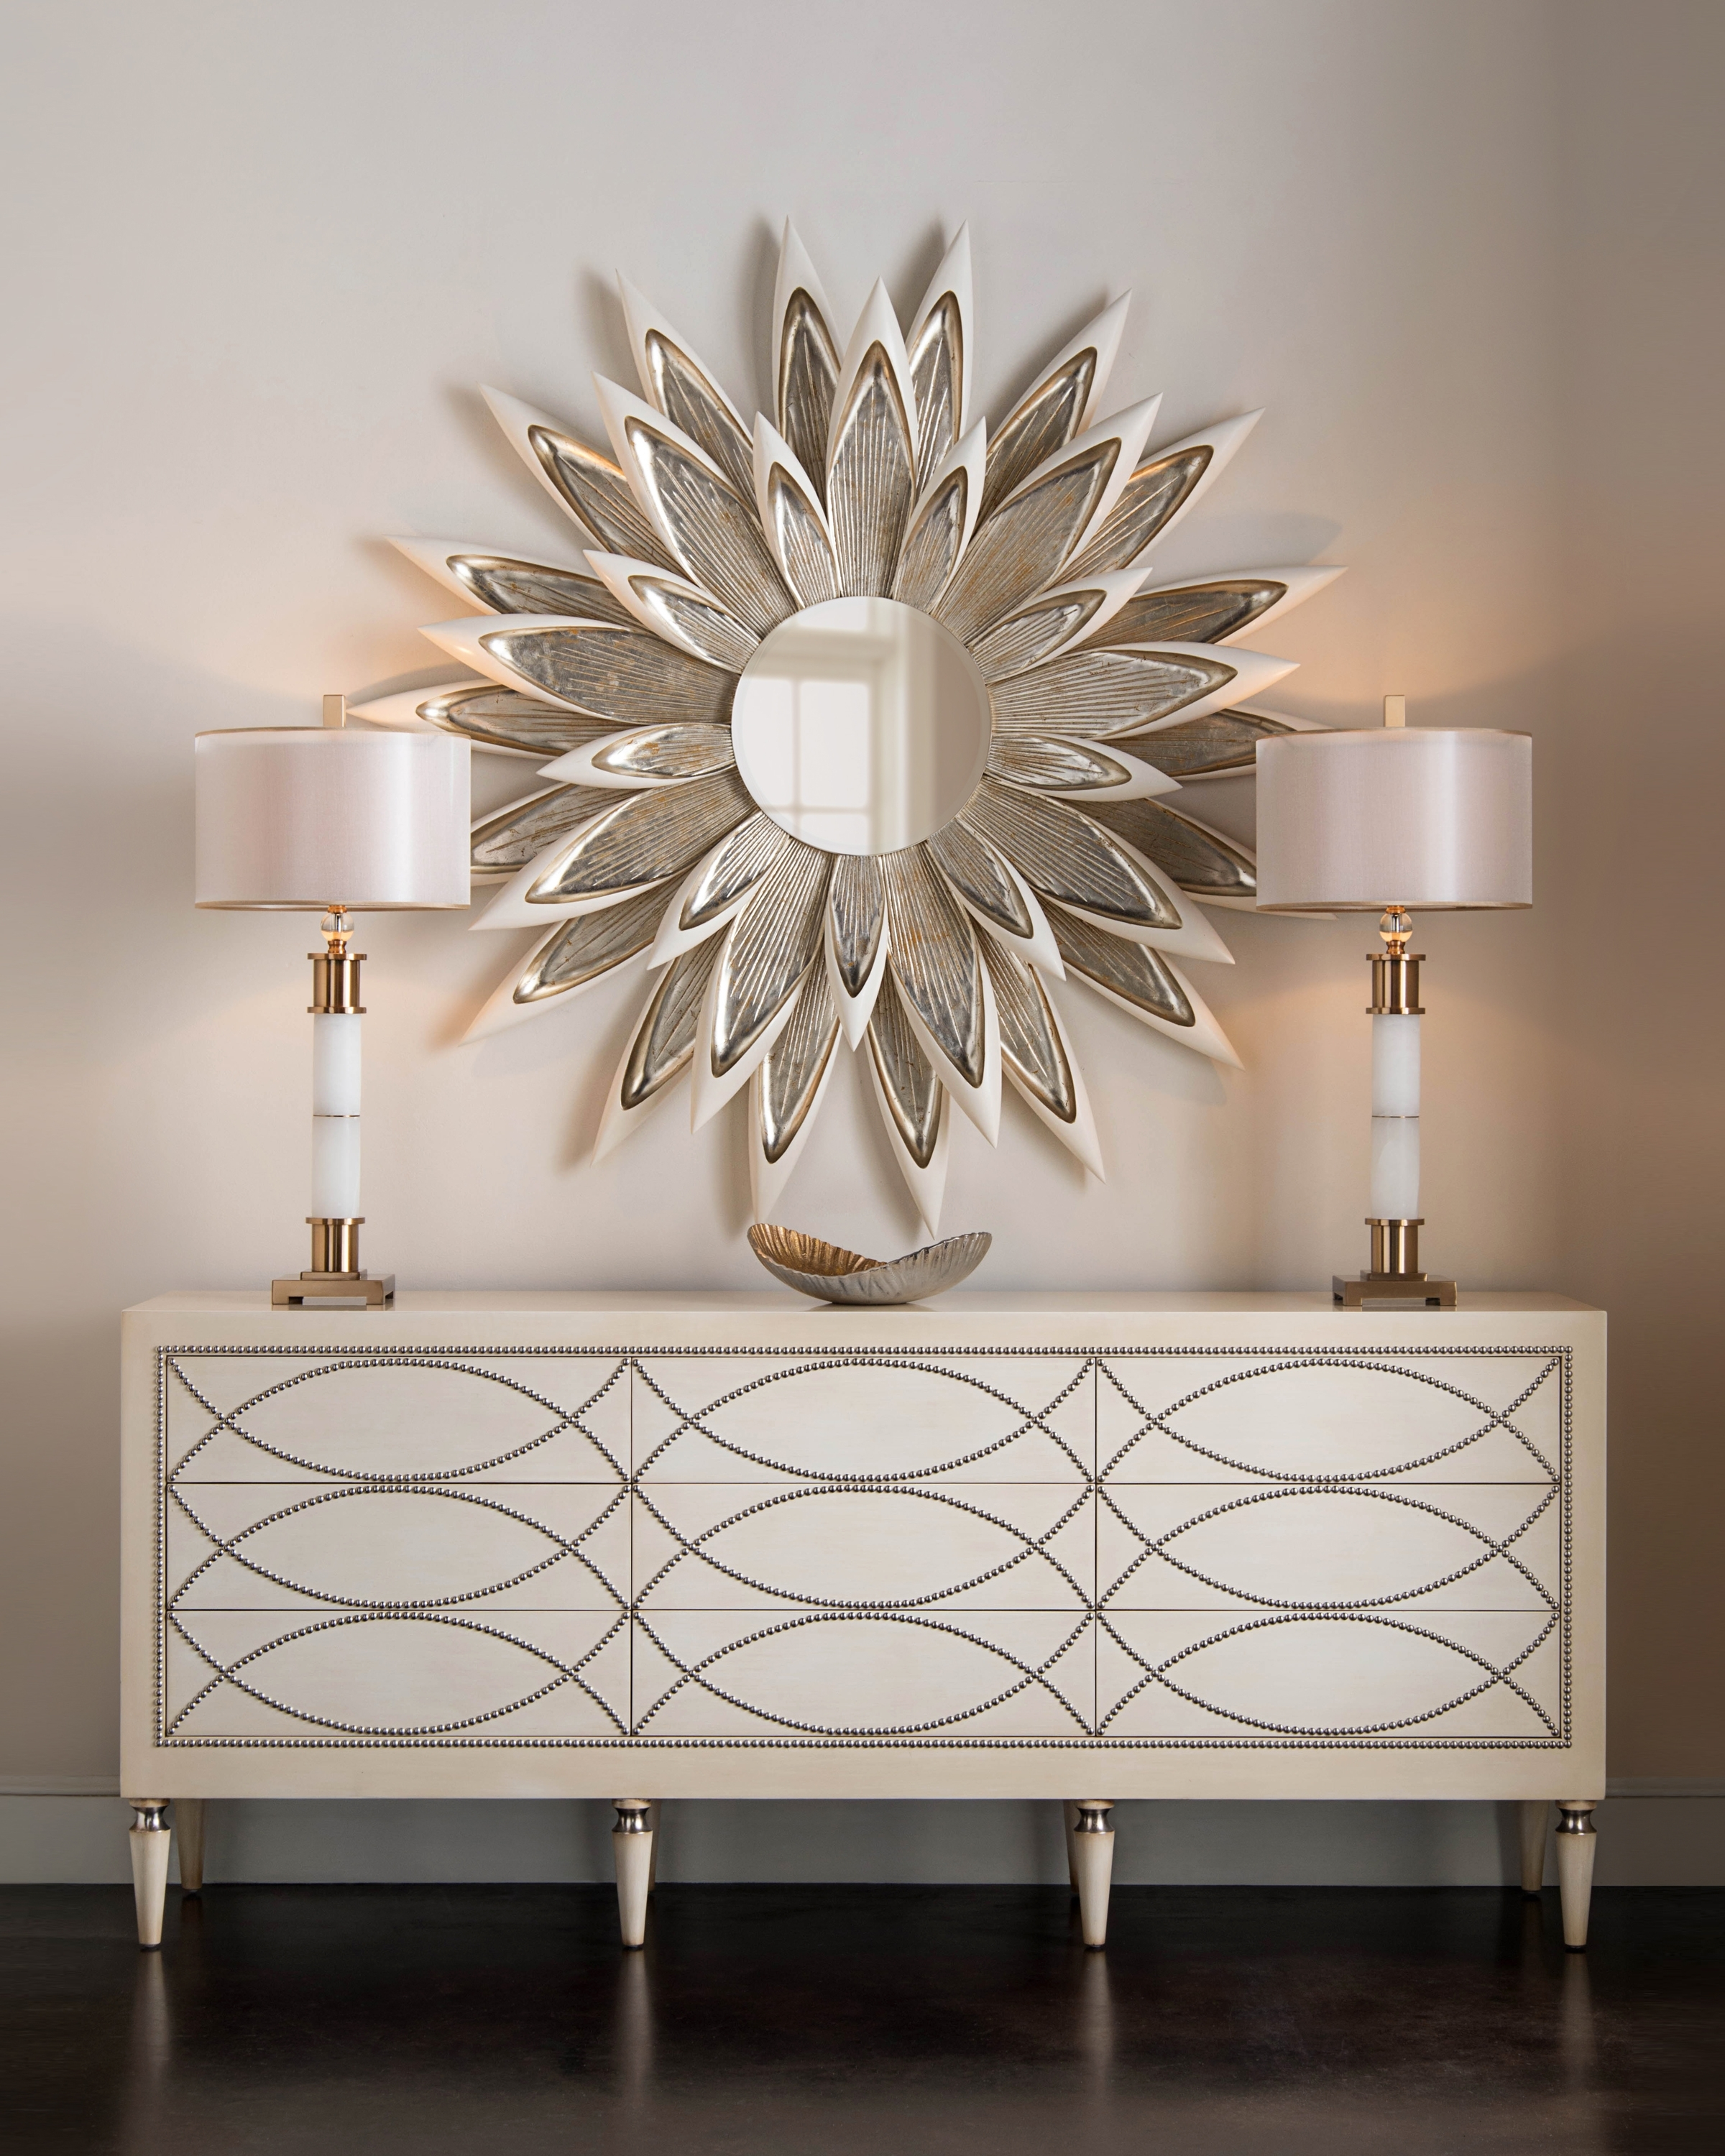 2018 Decor: Sunburst Mirror Kirklands Wall Art Metal With Modern Chest Intended For Kirklands Wall Art (View 1 of 15)